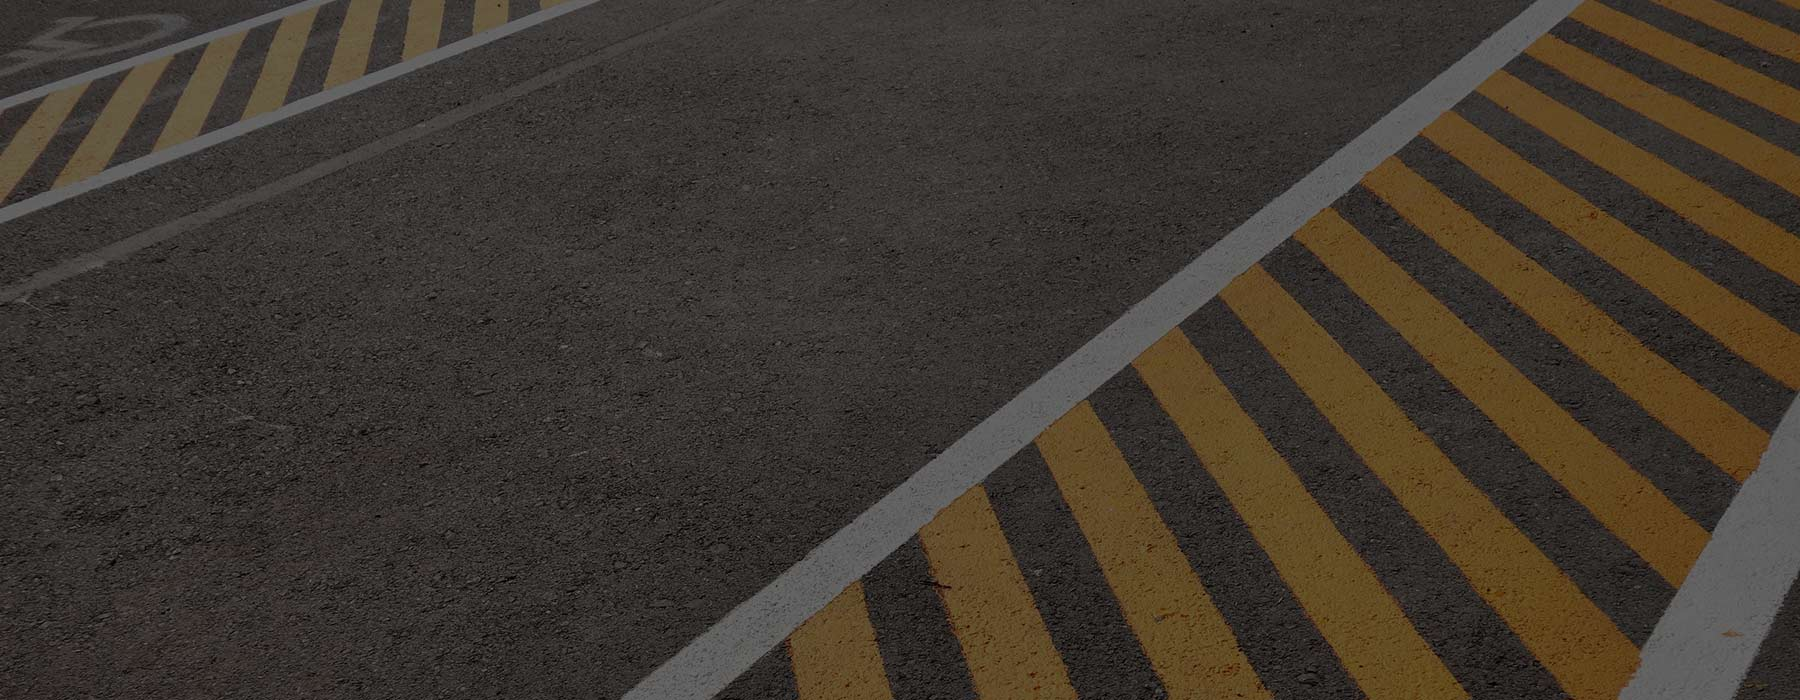 White and yellow striping on asphalt pavement - Southern Striping, LLC